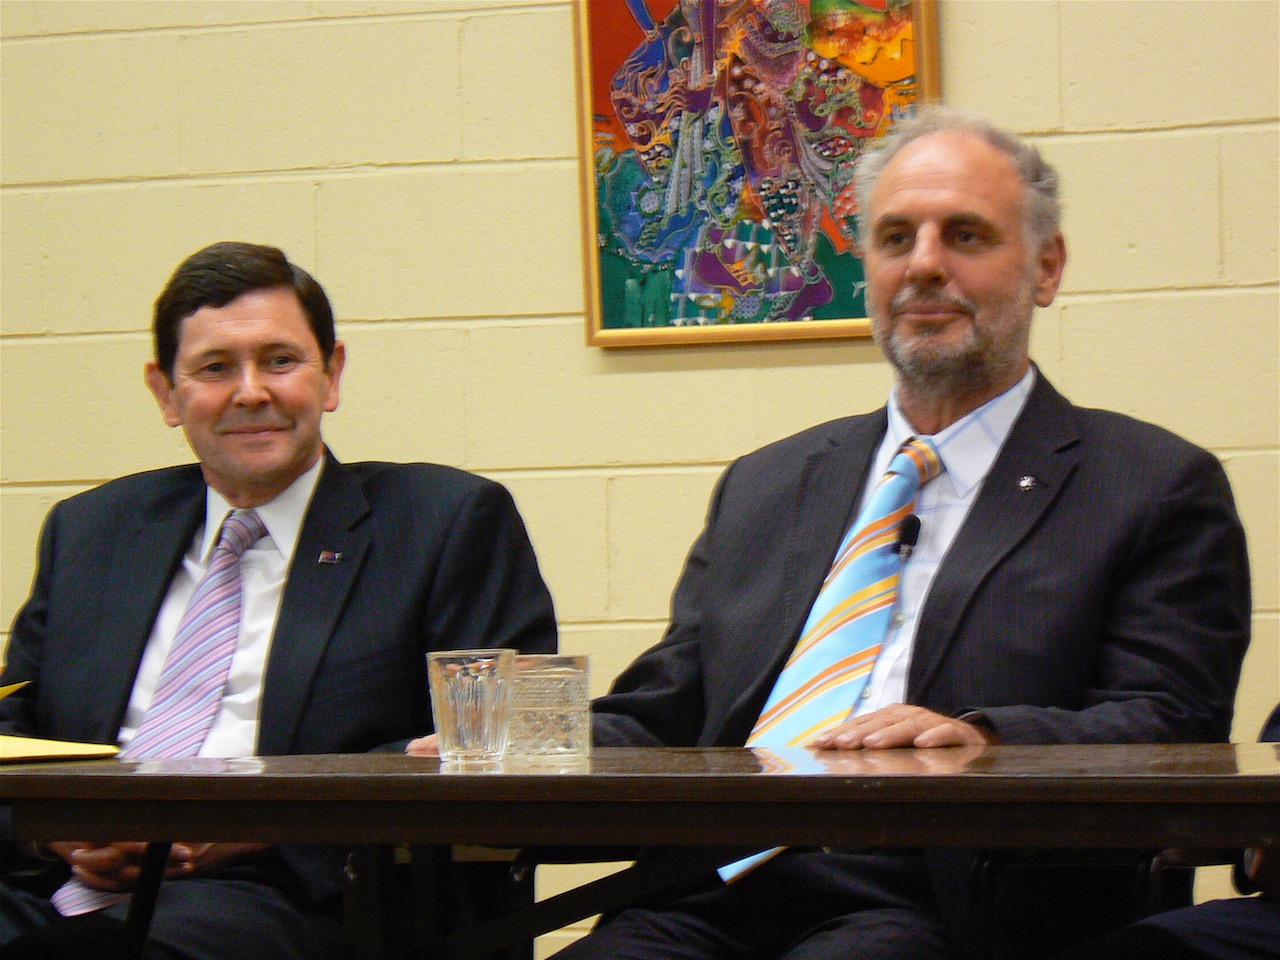 Kevin Andrews and Philip Nitschke